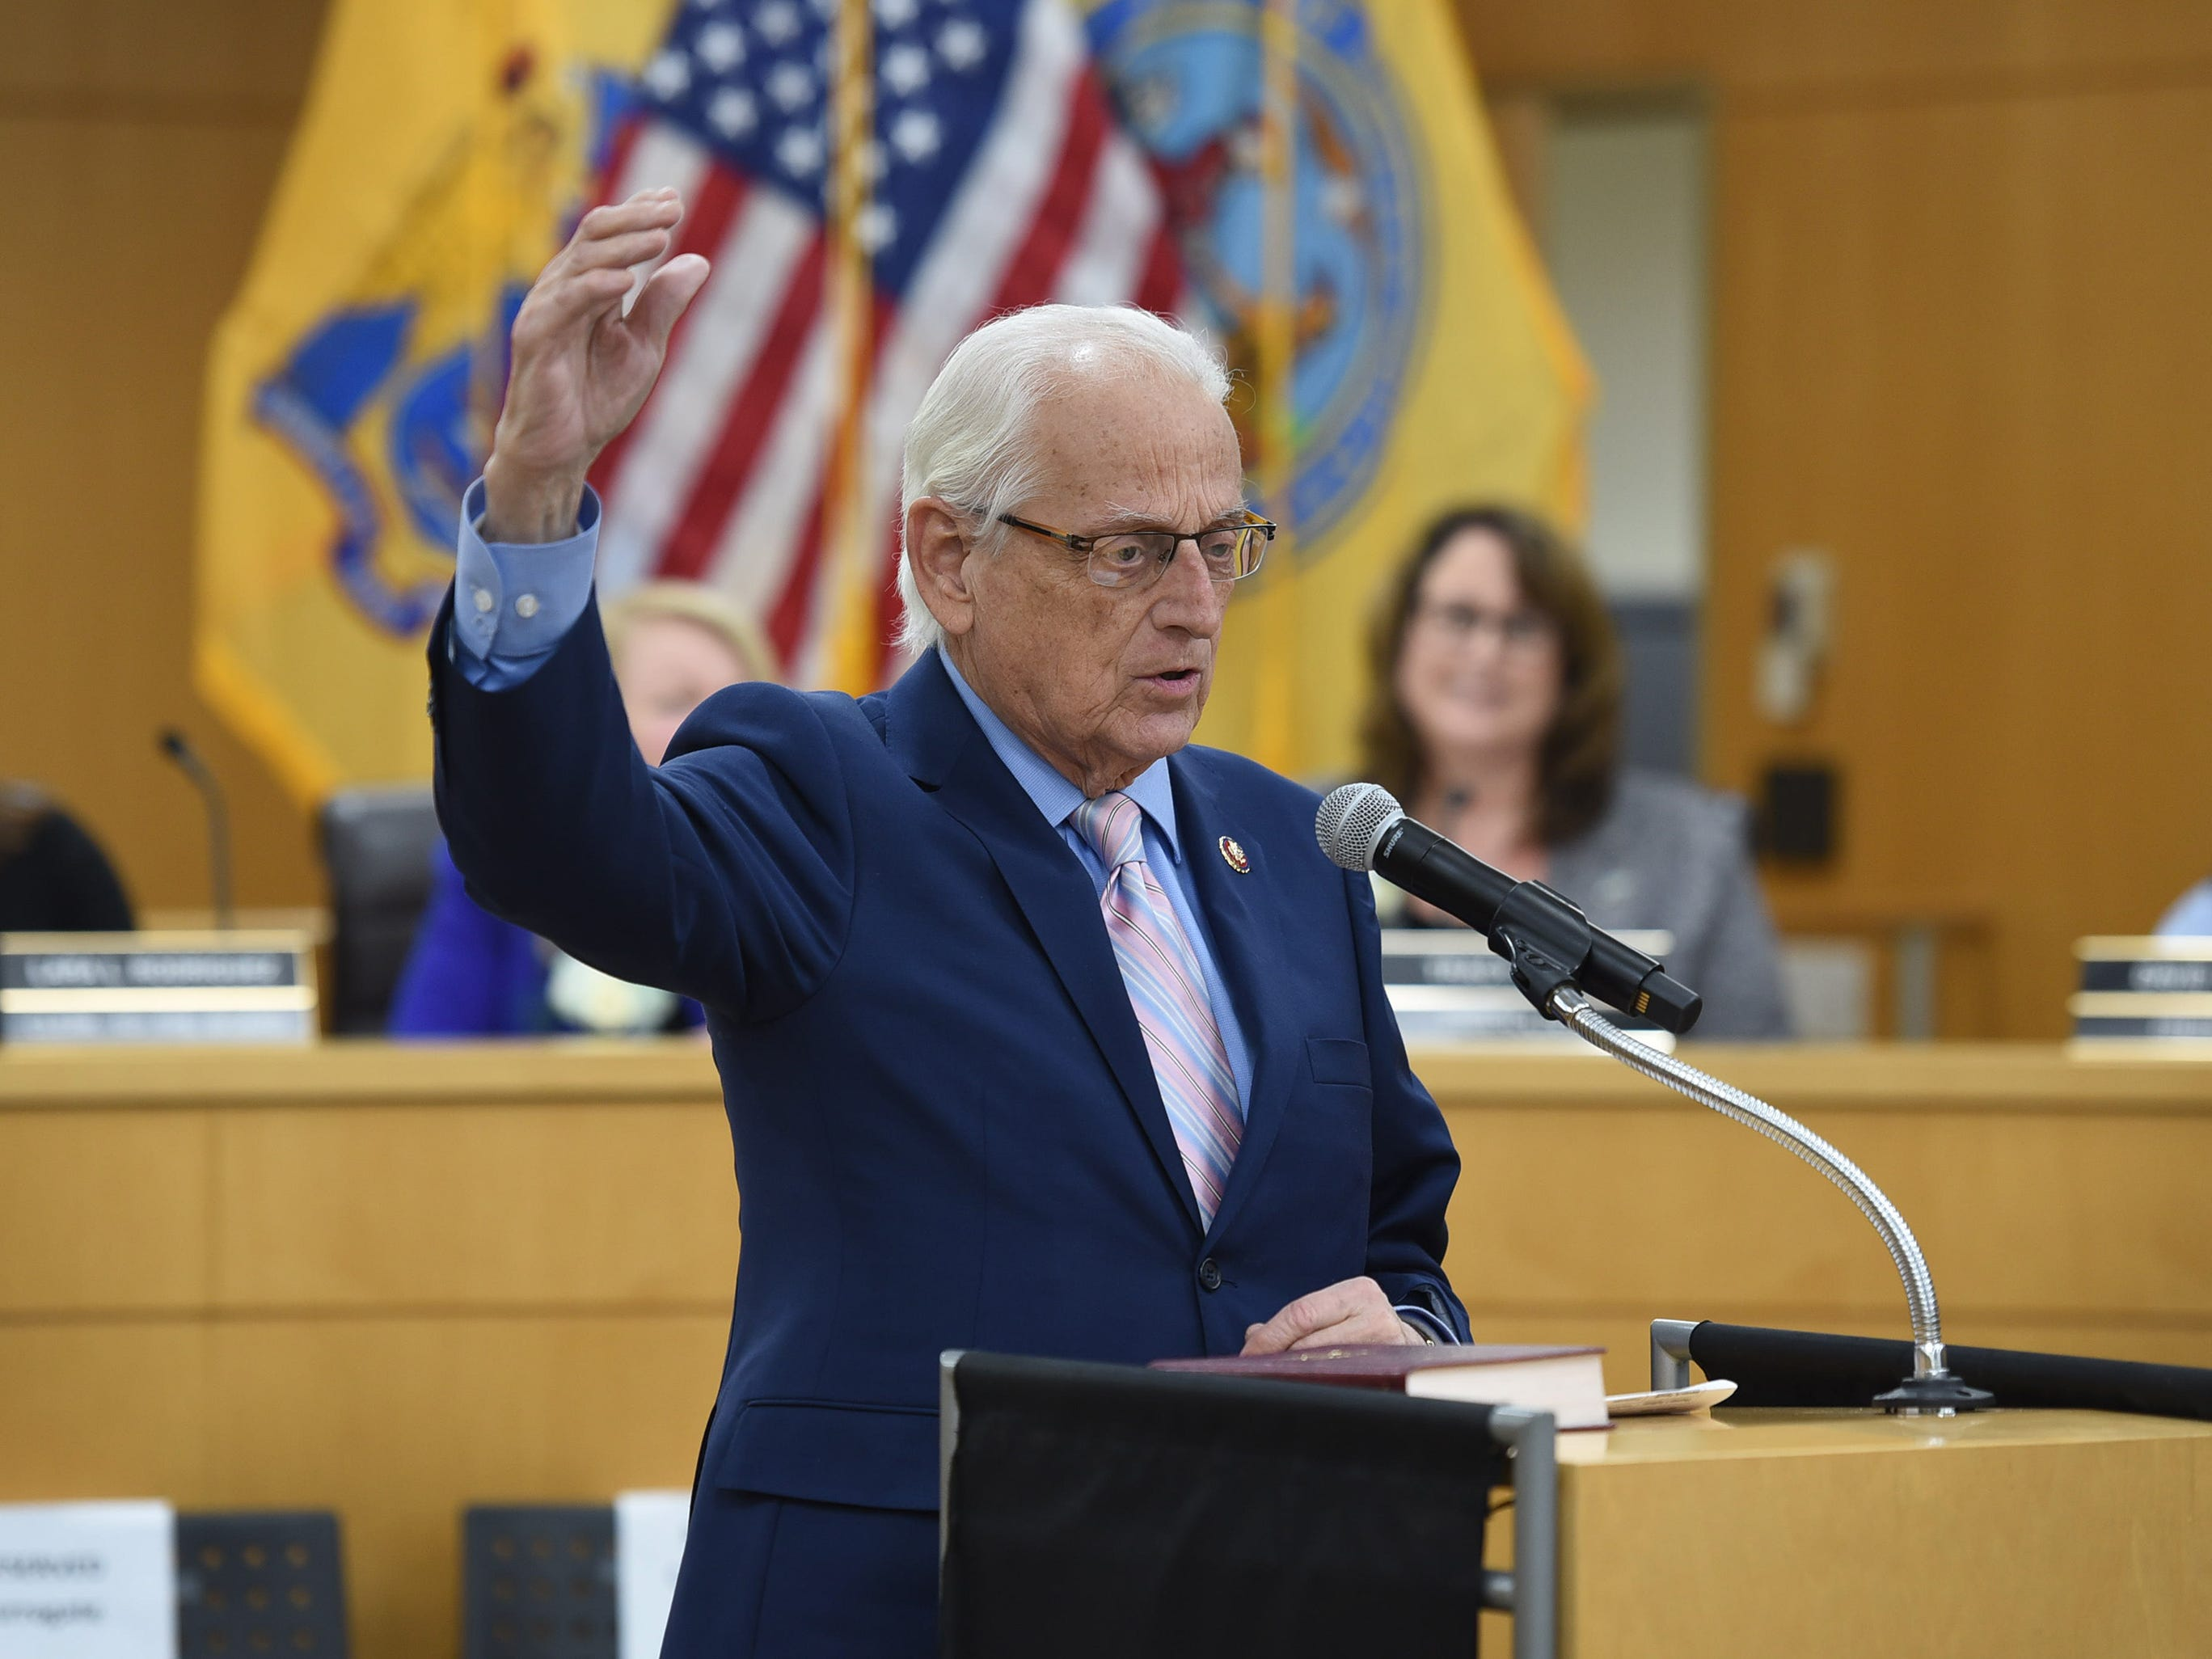 Congressman William Pascrell speaks during the annual Bergen County freeholder board's reorganization meeting, photographed at Bergen County Plaza in Hackensack on 01/07/19.